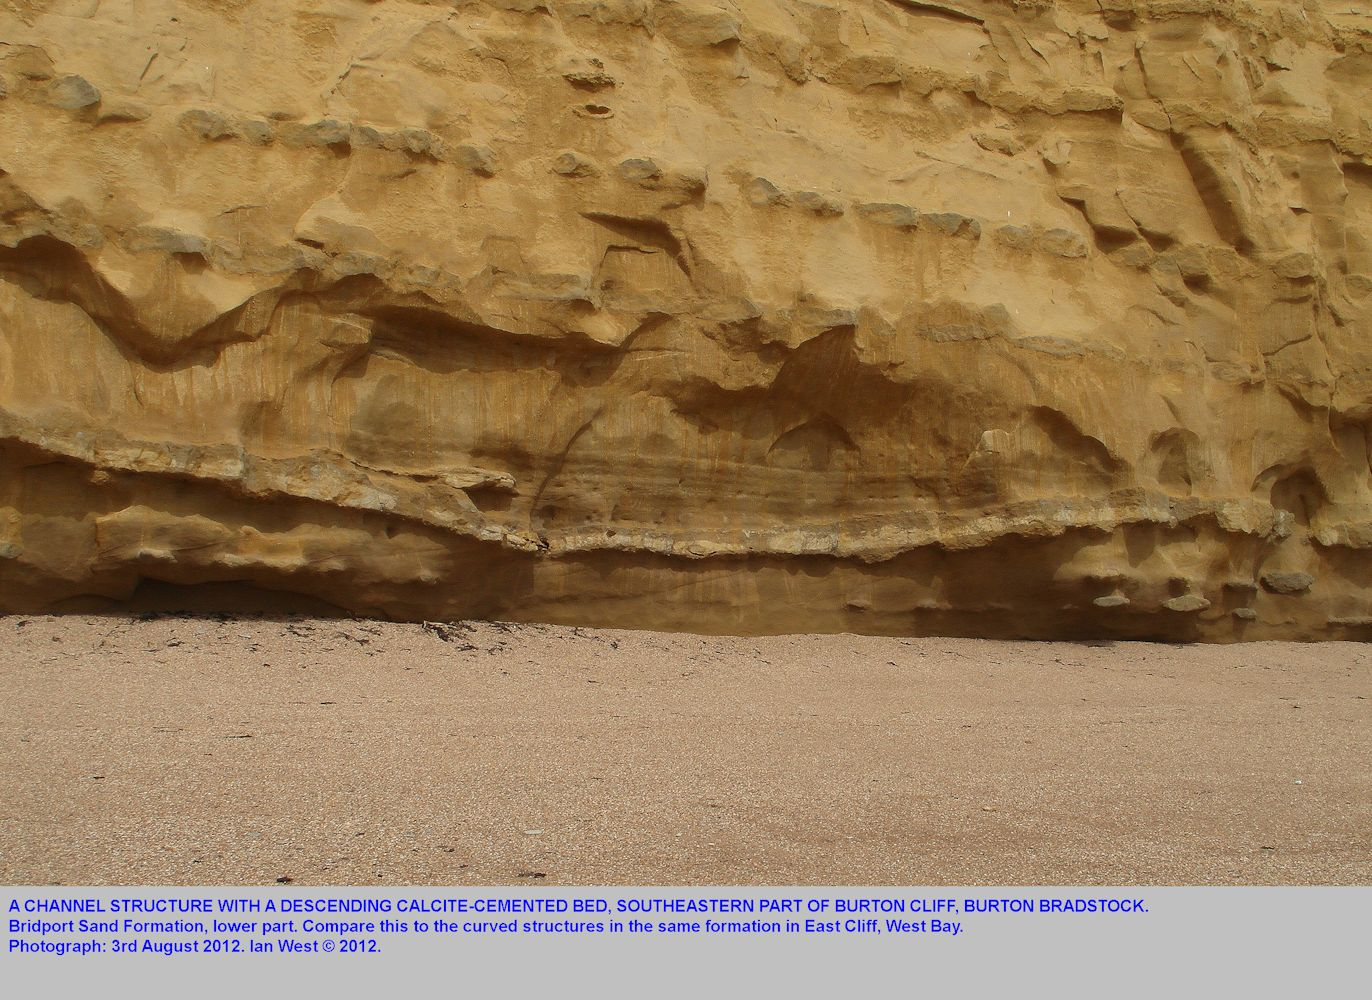 A channel structure in the Bridport Sand Formation, lower part, at Burton Cliff, Burton Bradstock, Dorset, 3rd August 2012